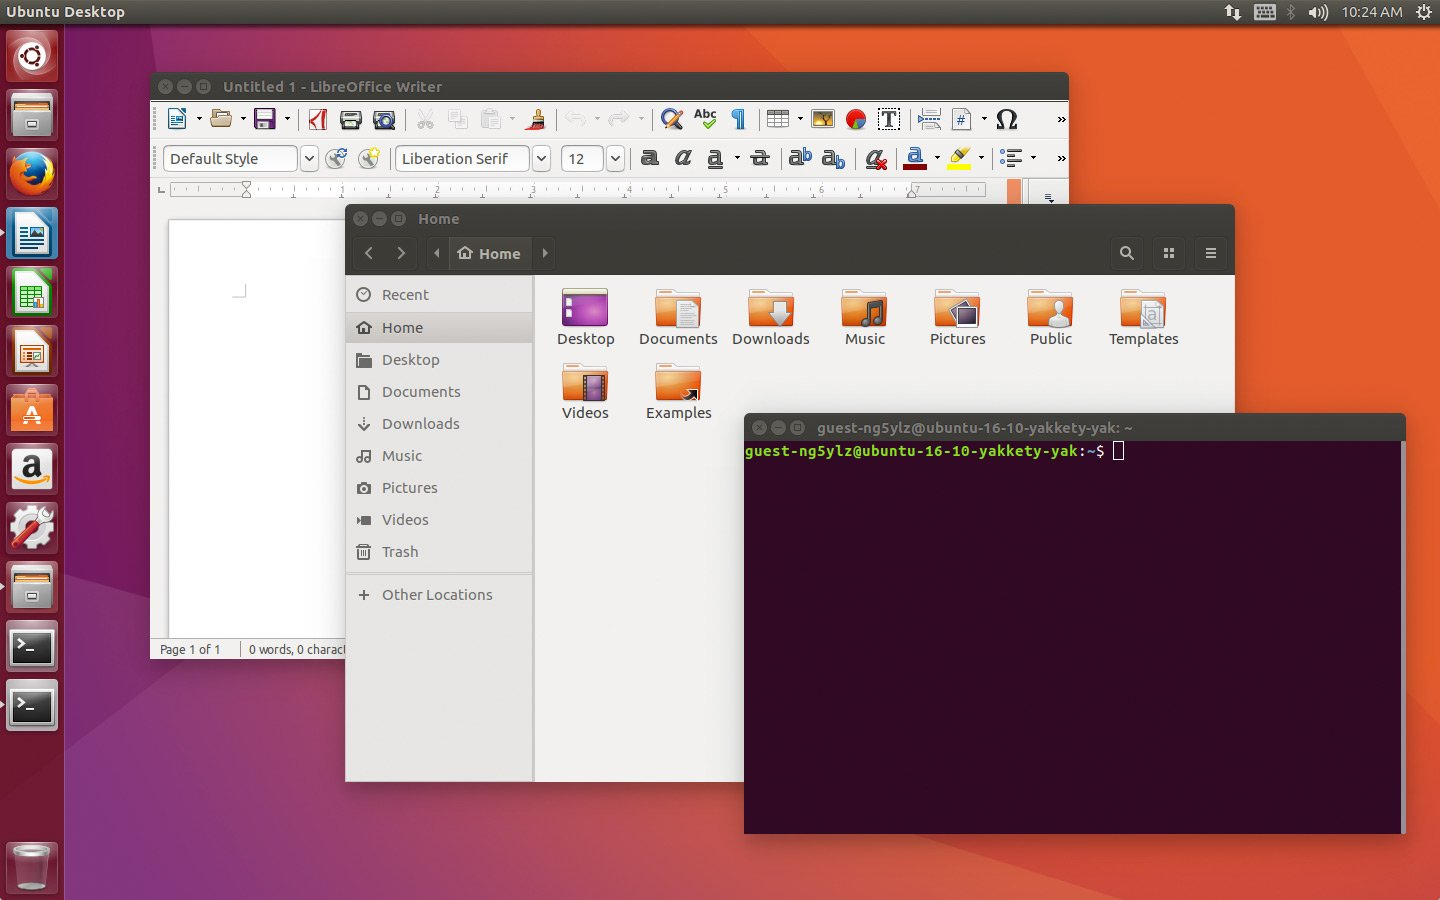 ubuntu-1610-desktop-screenshot-1